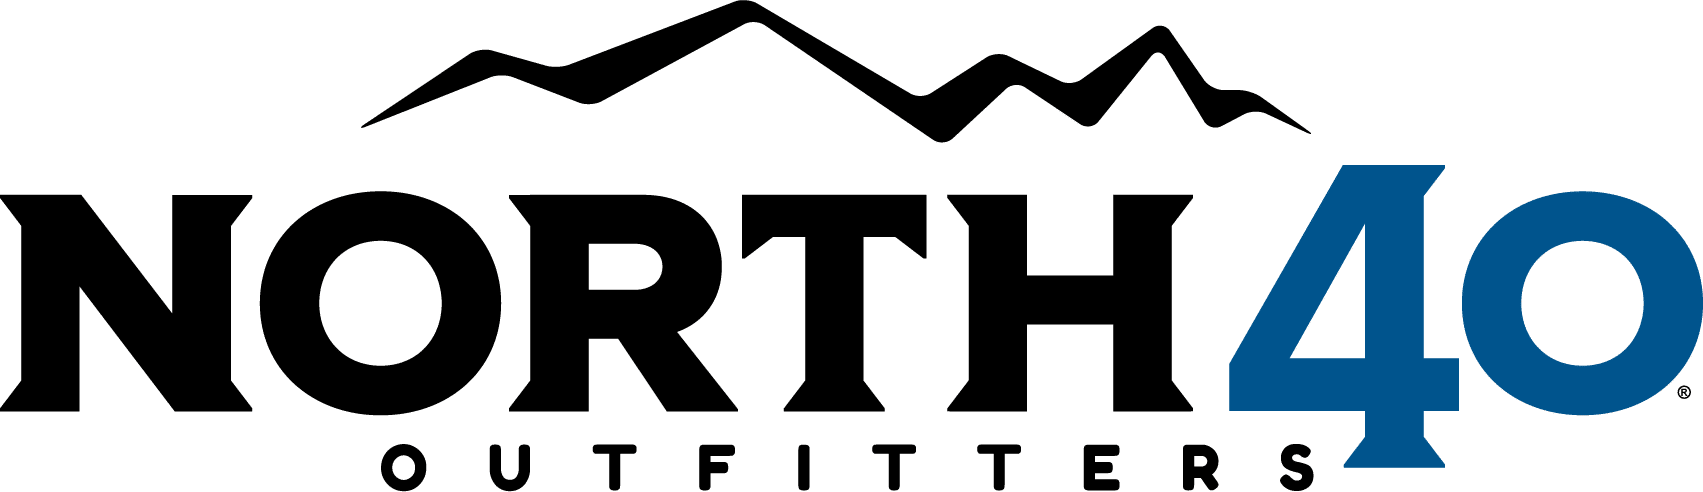 North_40_outfitters_logo